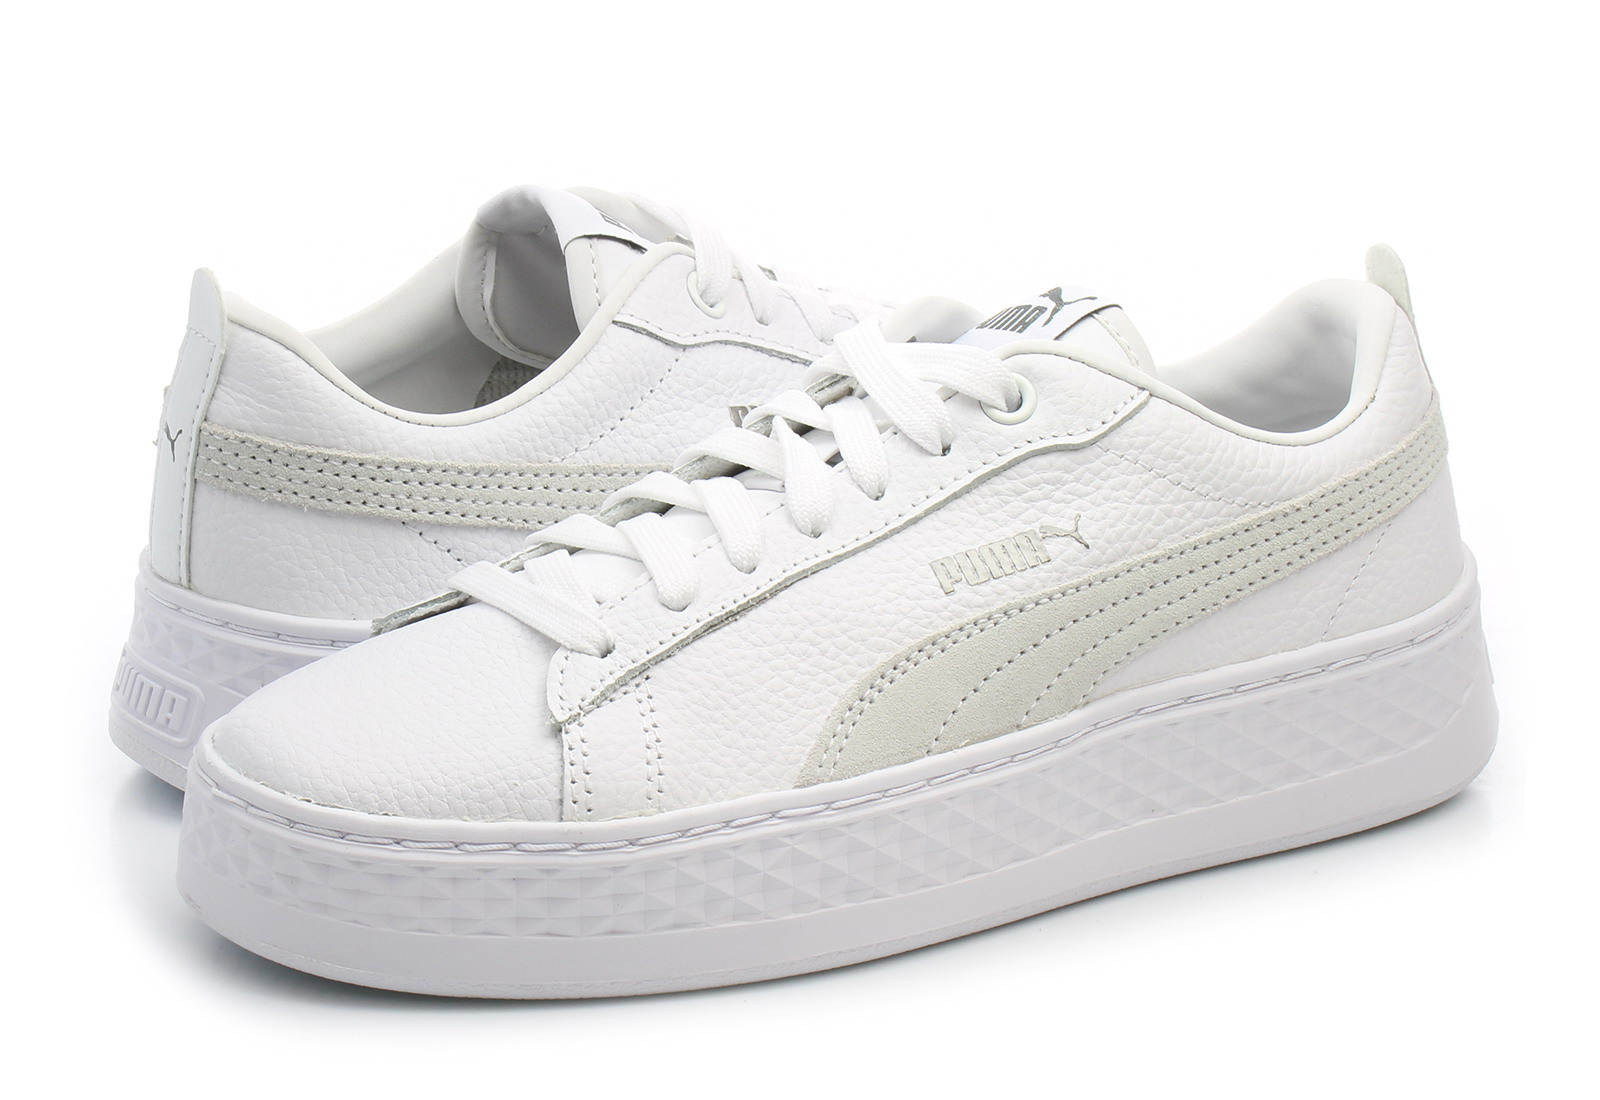 size 40 05ca8 63a36 Puma Shoes Puma Smash Platform L